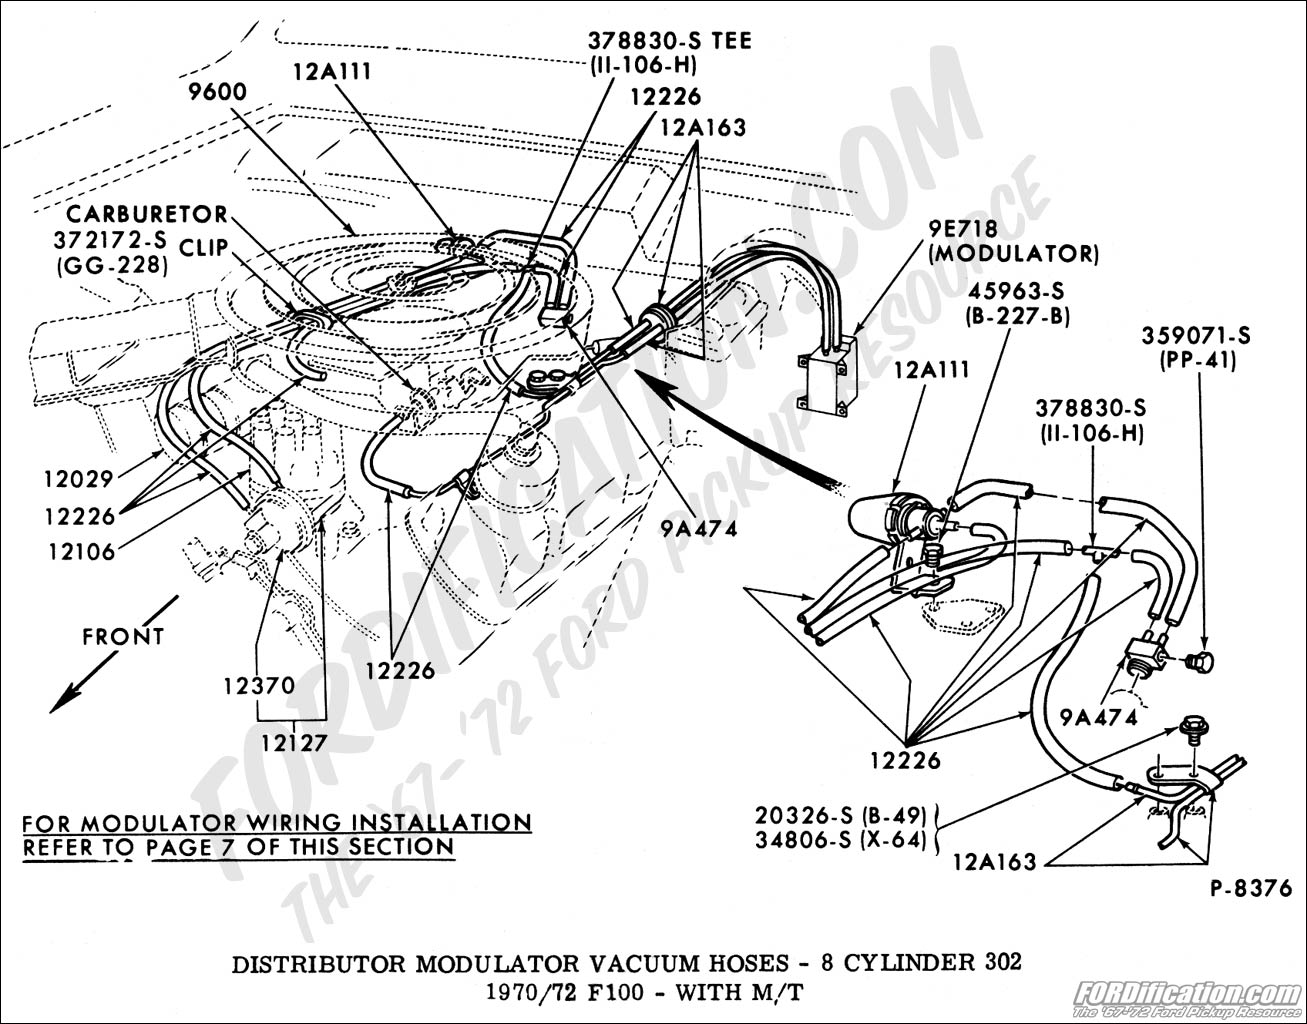 1998 Ford Explorer V8 Fuse Diagram Search For Wiring Diagrams 02 Box Truck Technical Drawings And Schematics Section I 1995 2005